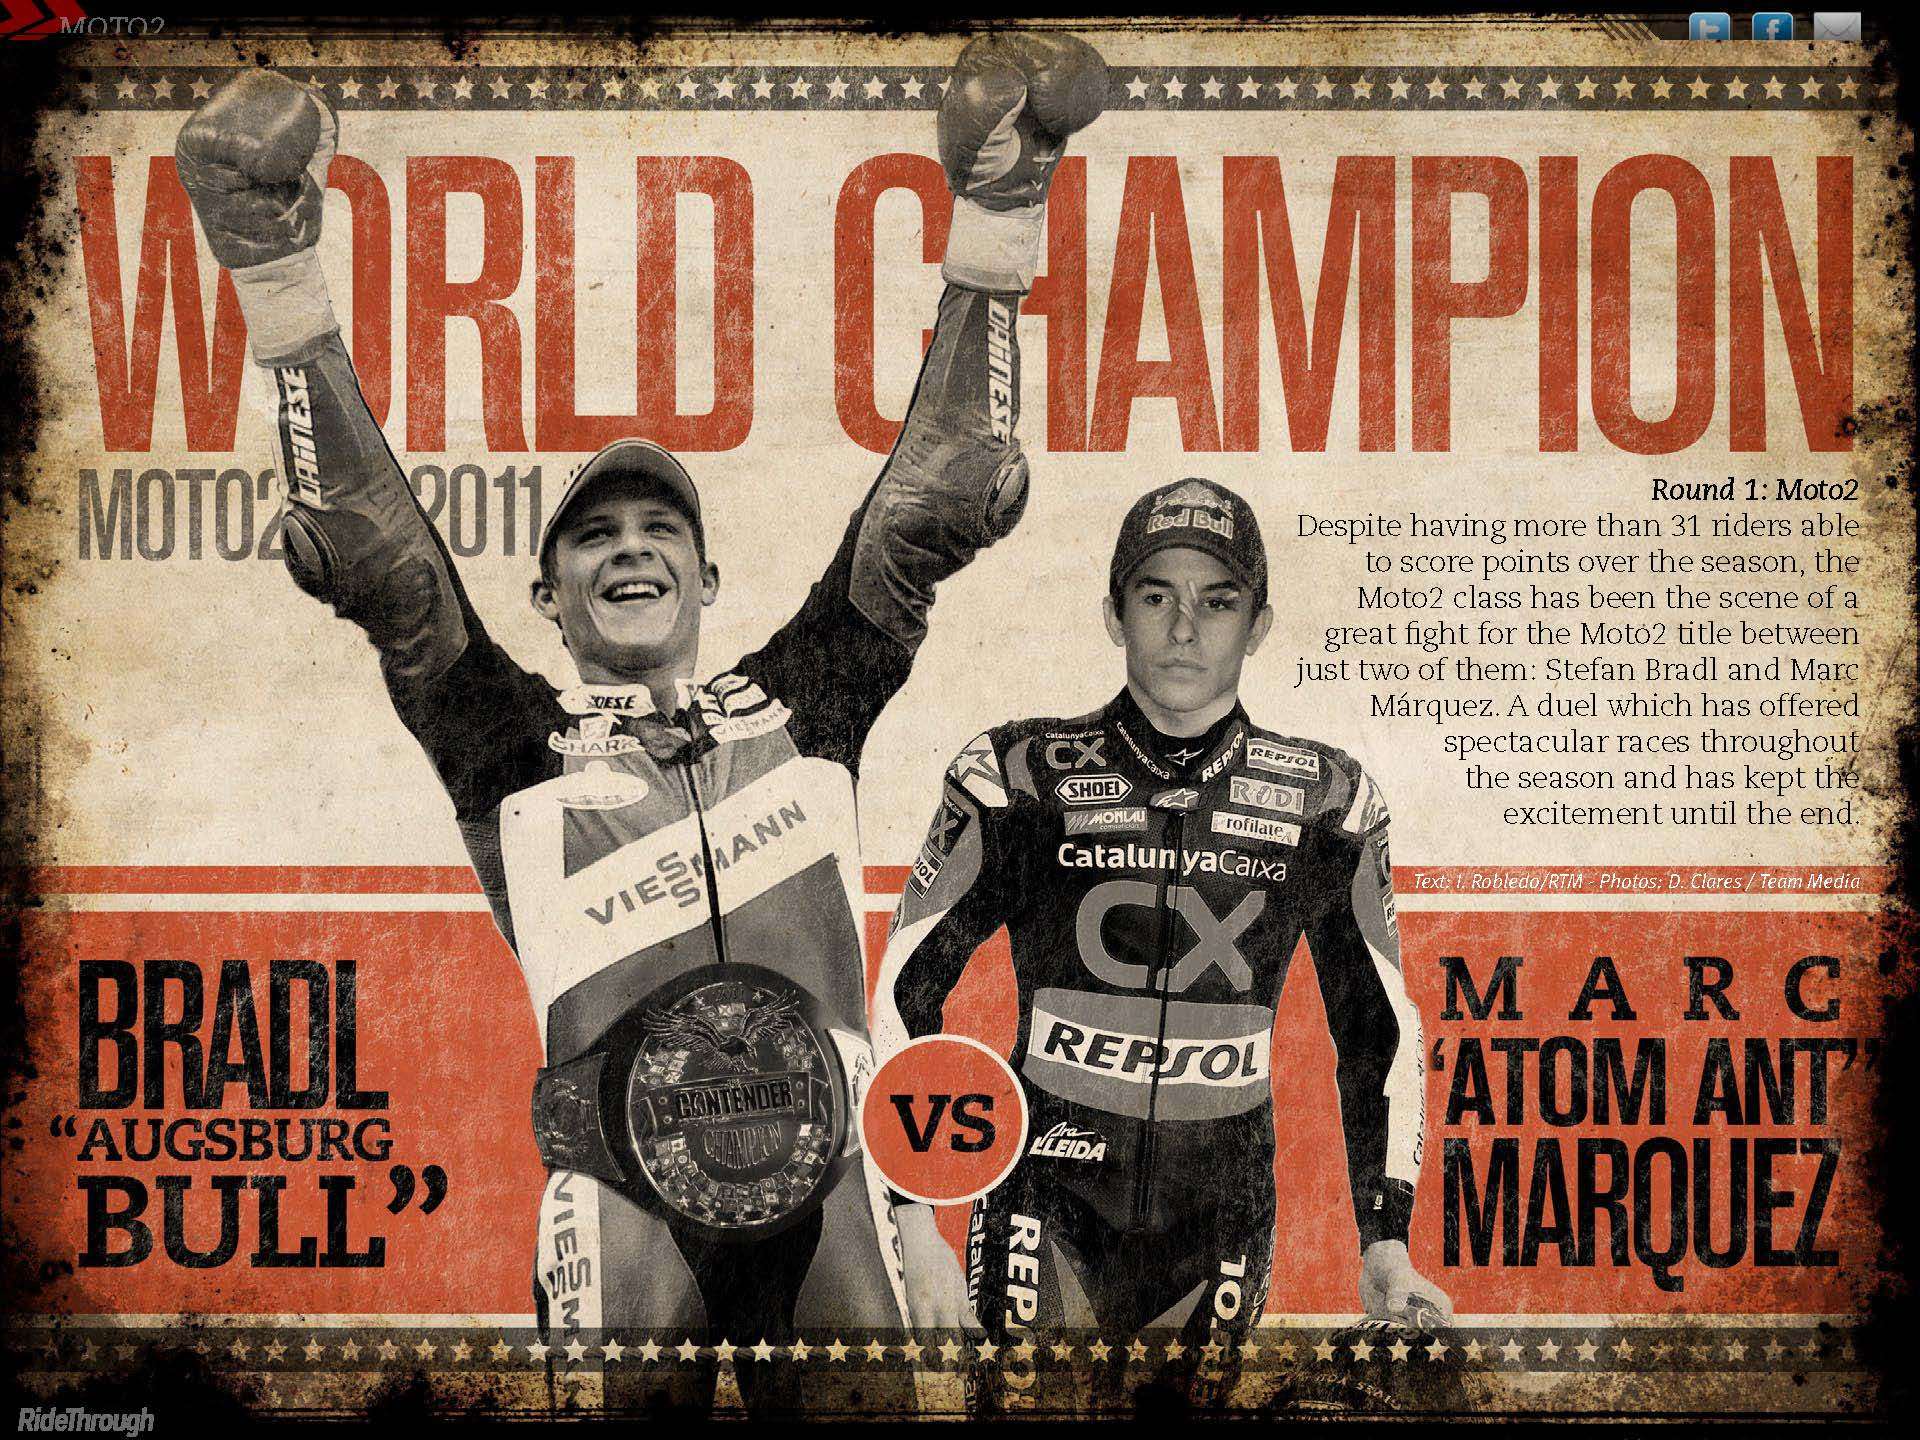 Photograph Moto2 World Champion - Round 1 by Ride Through Mag on 500px